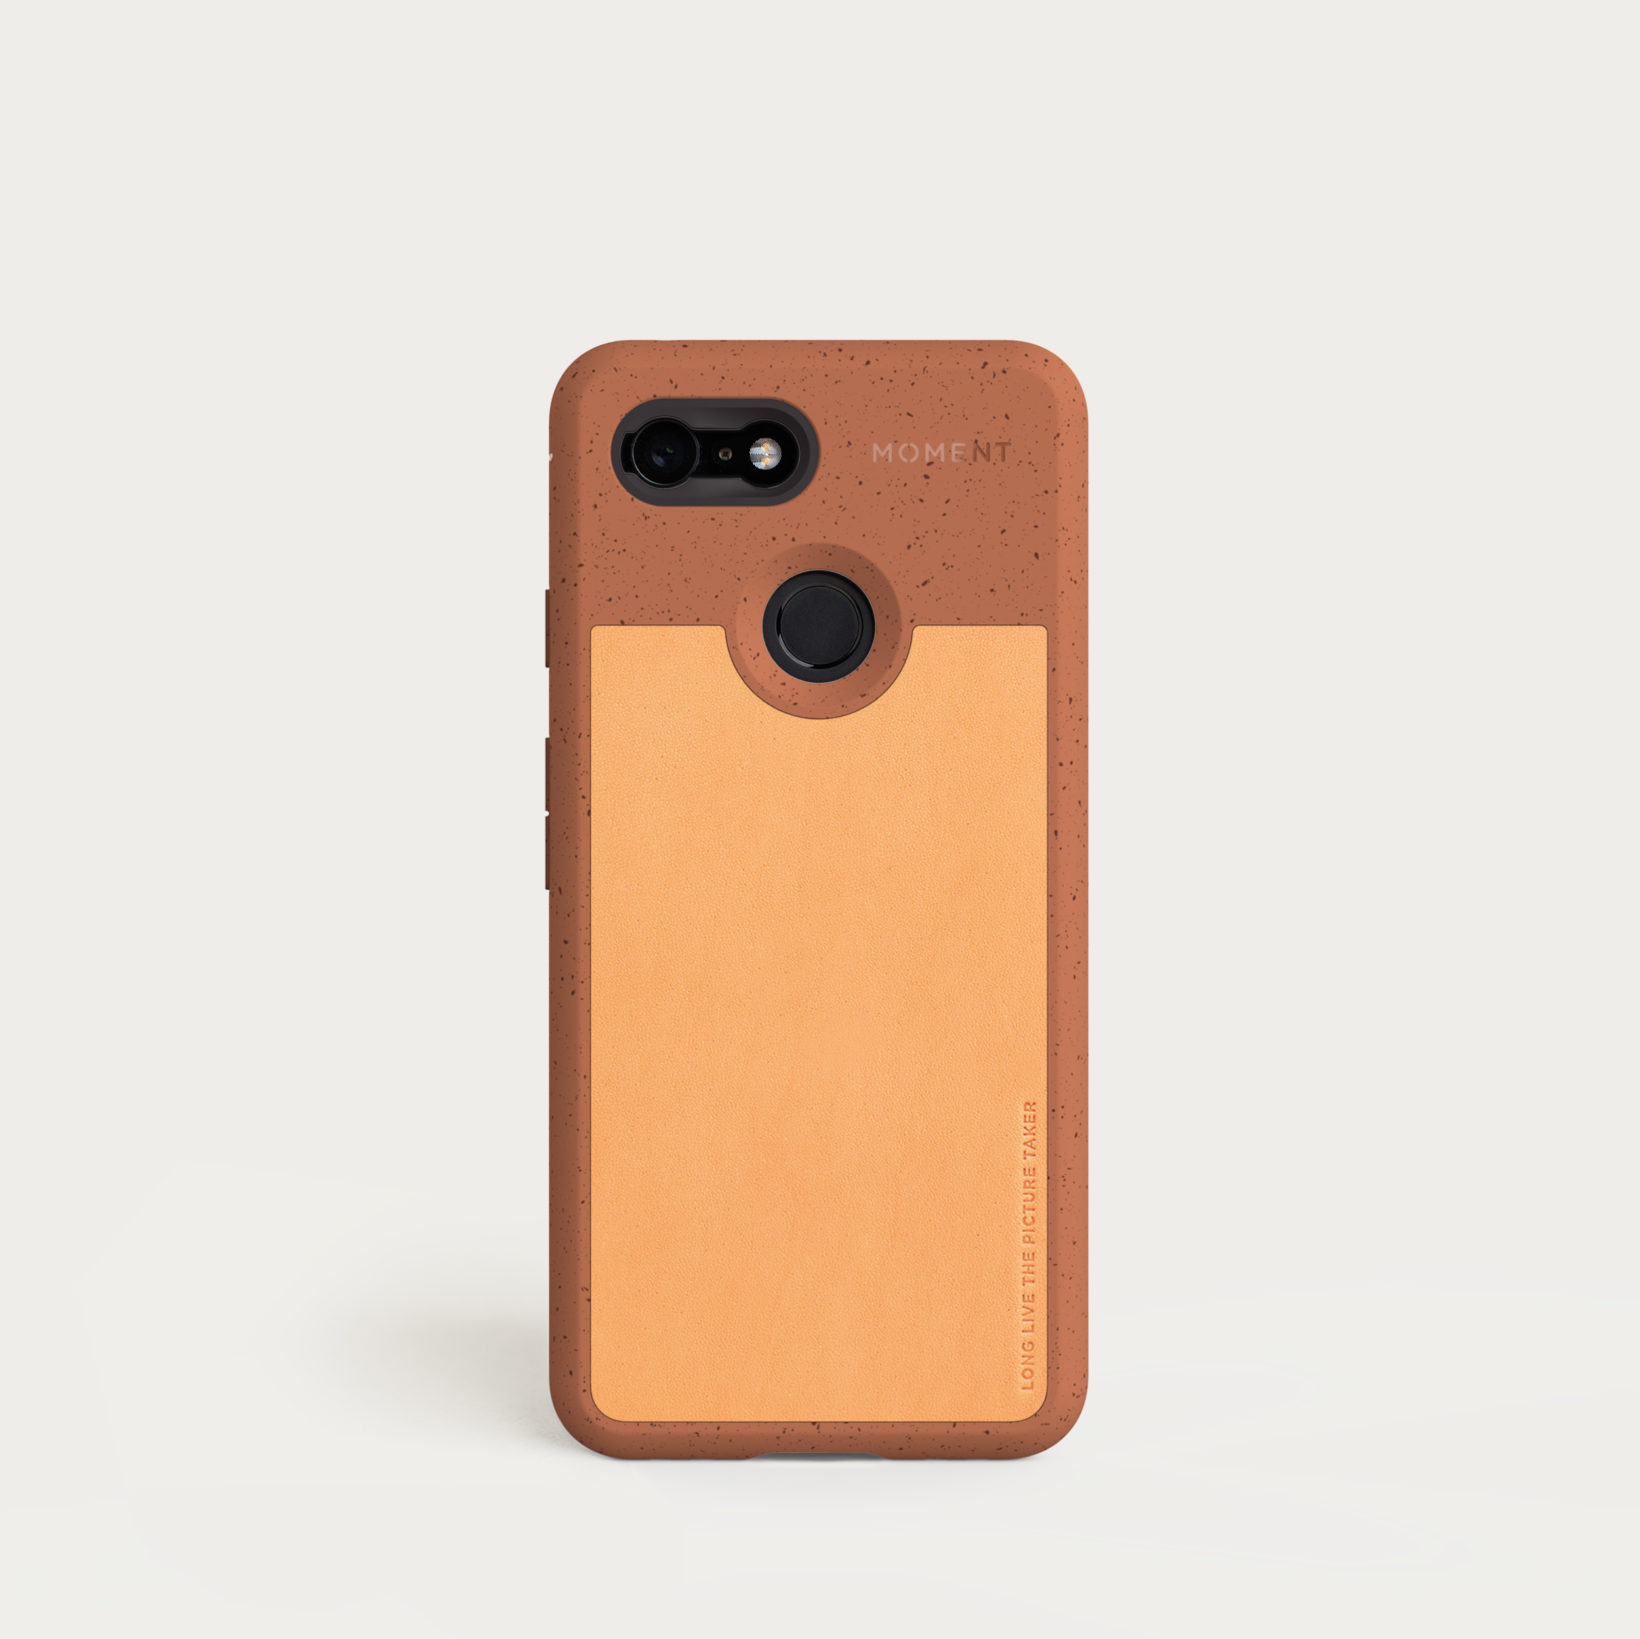 separation shoes cdf46 aa102 Pixel Photo Case | Pixel 3 Photo Case in Terracotta